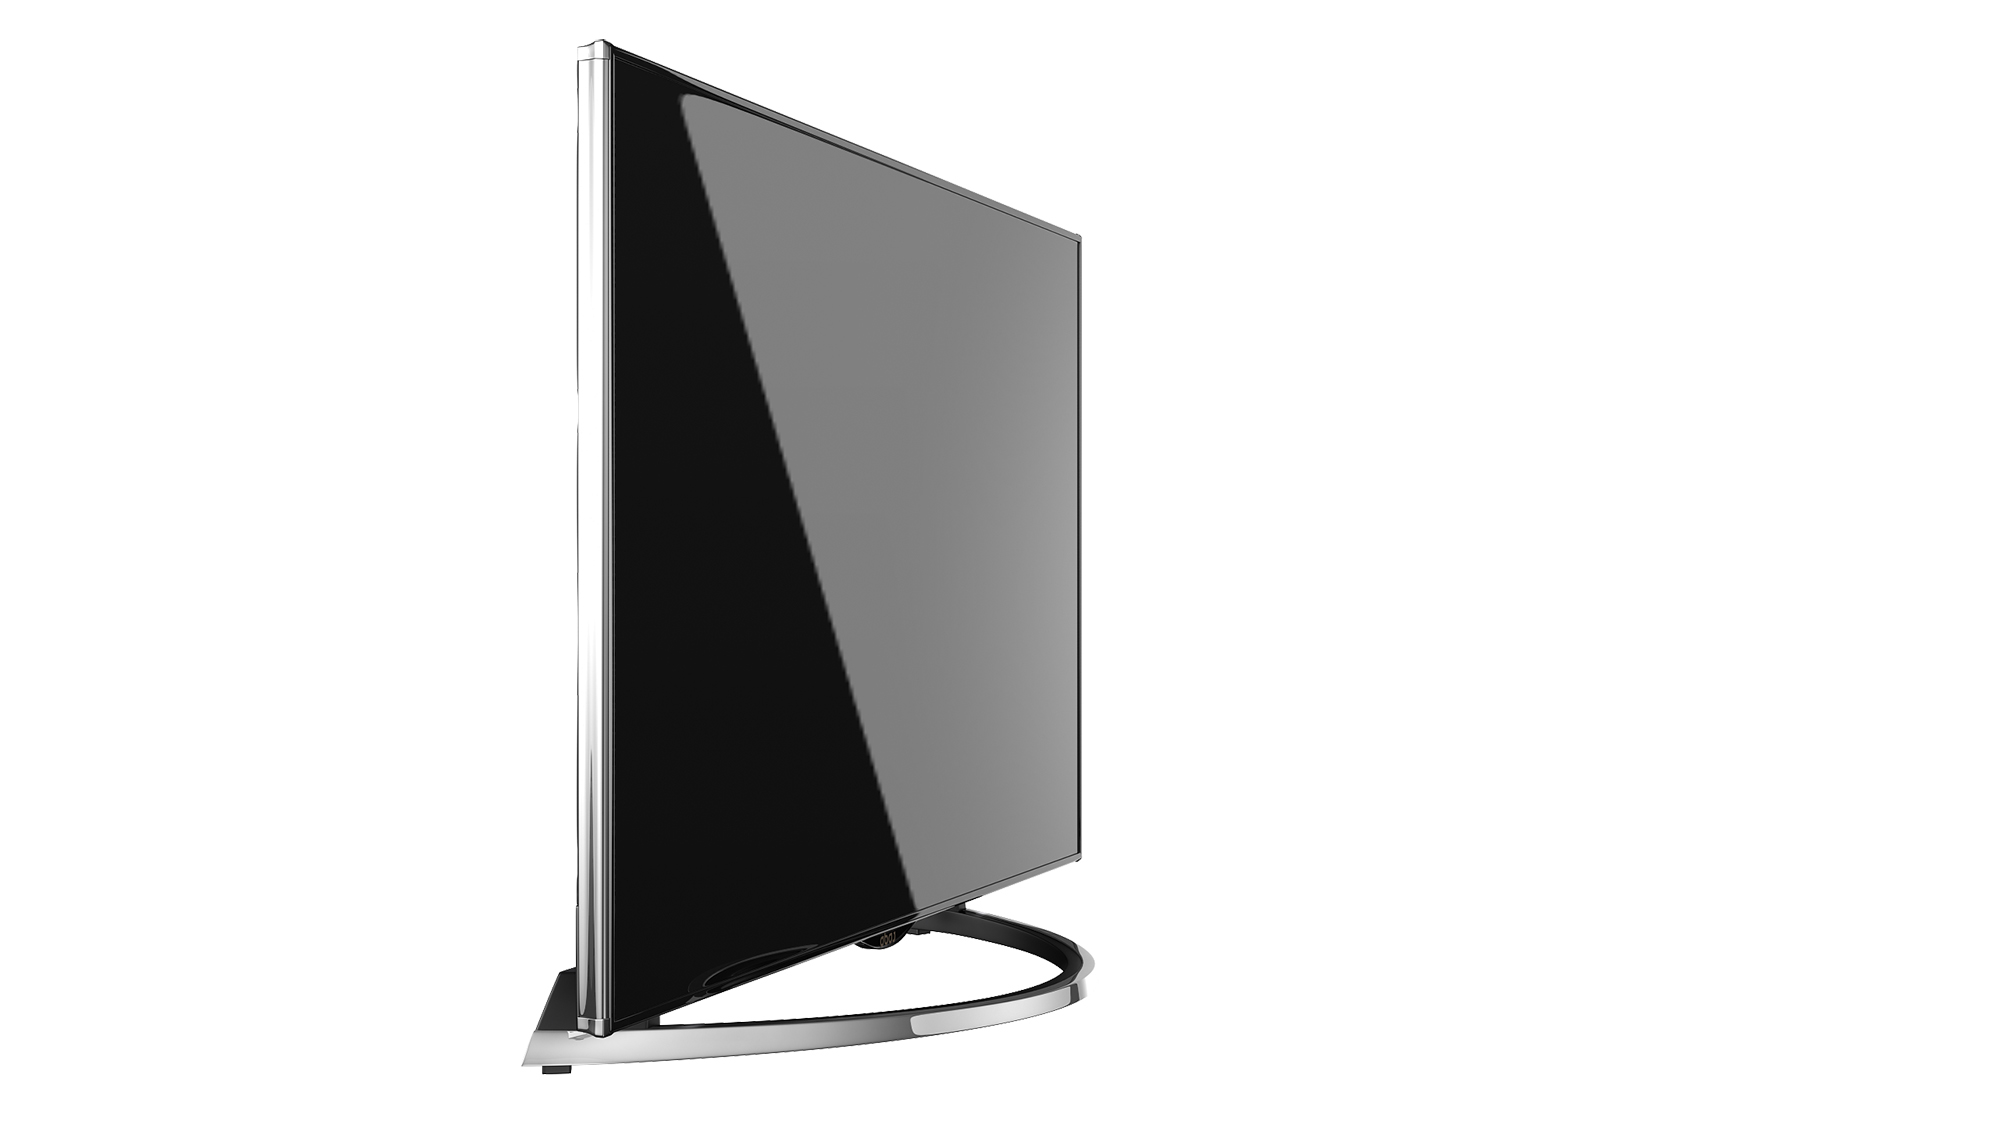 Product Modeling – TV